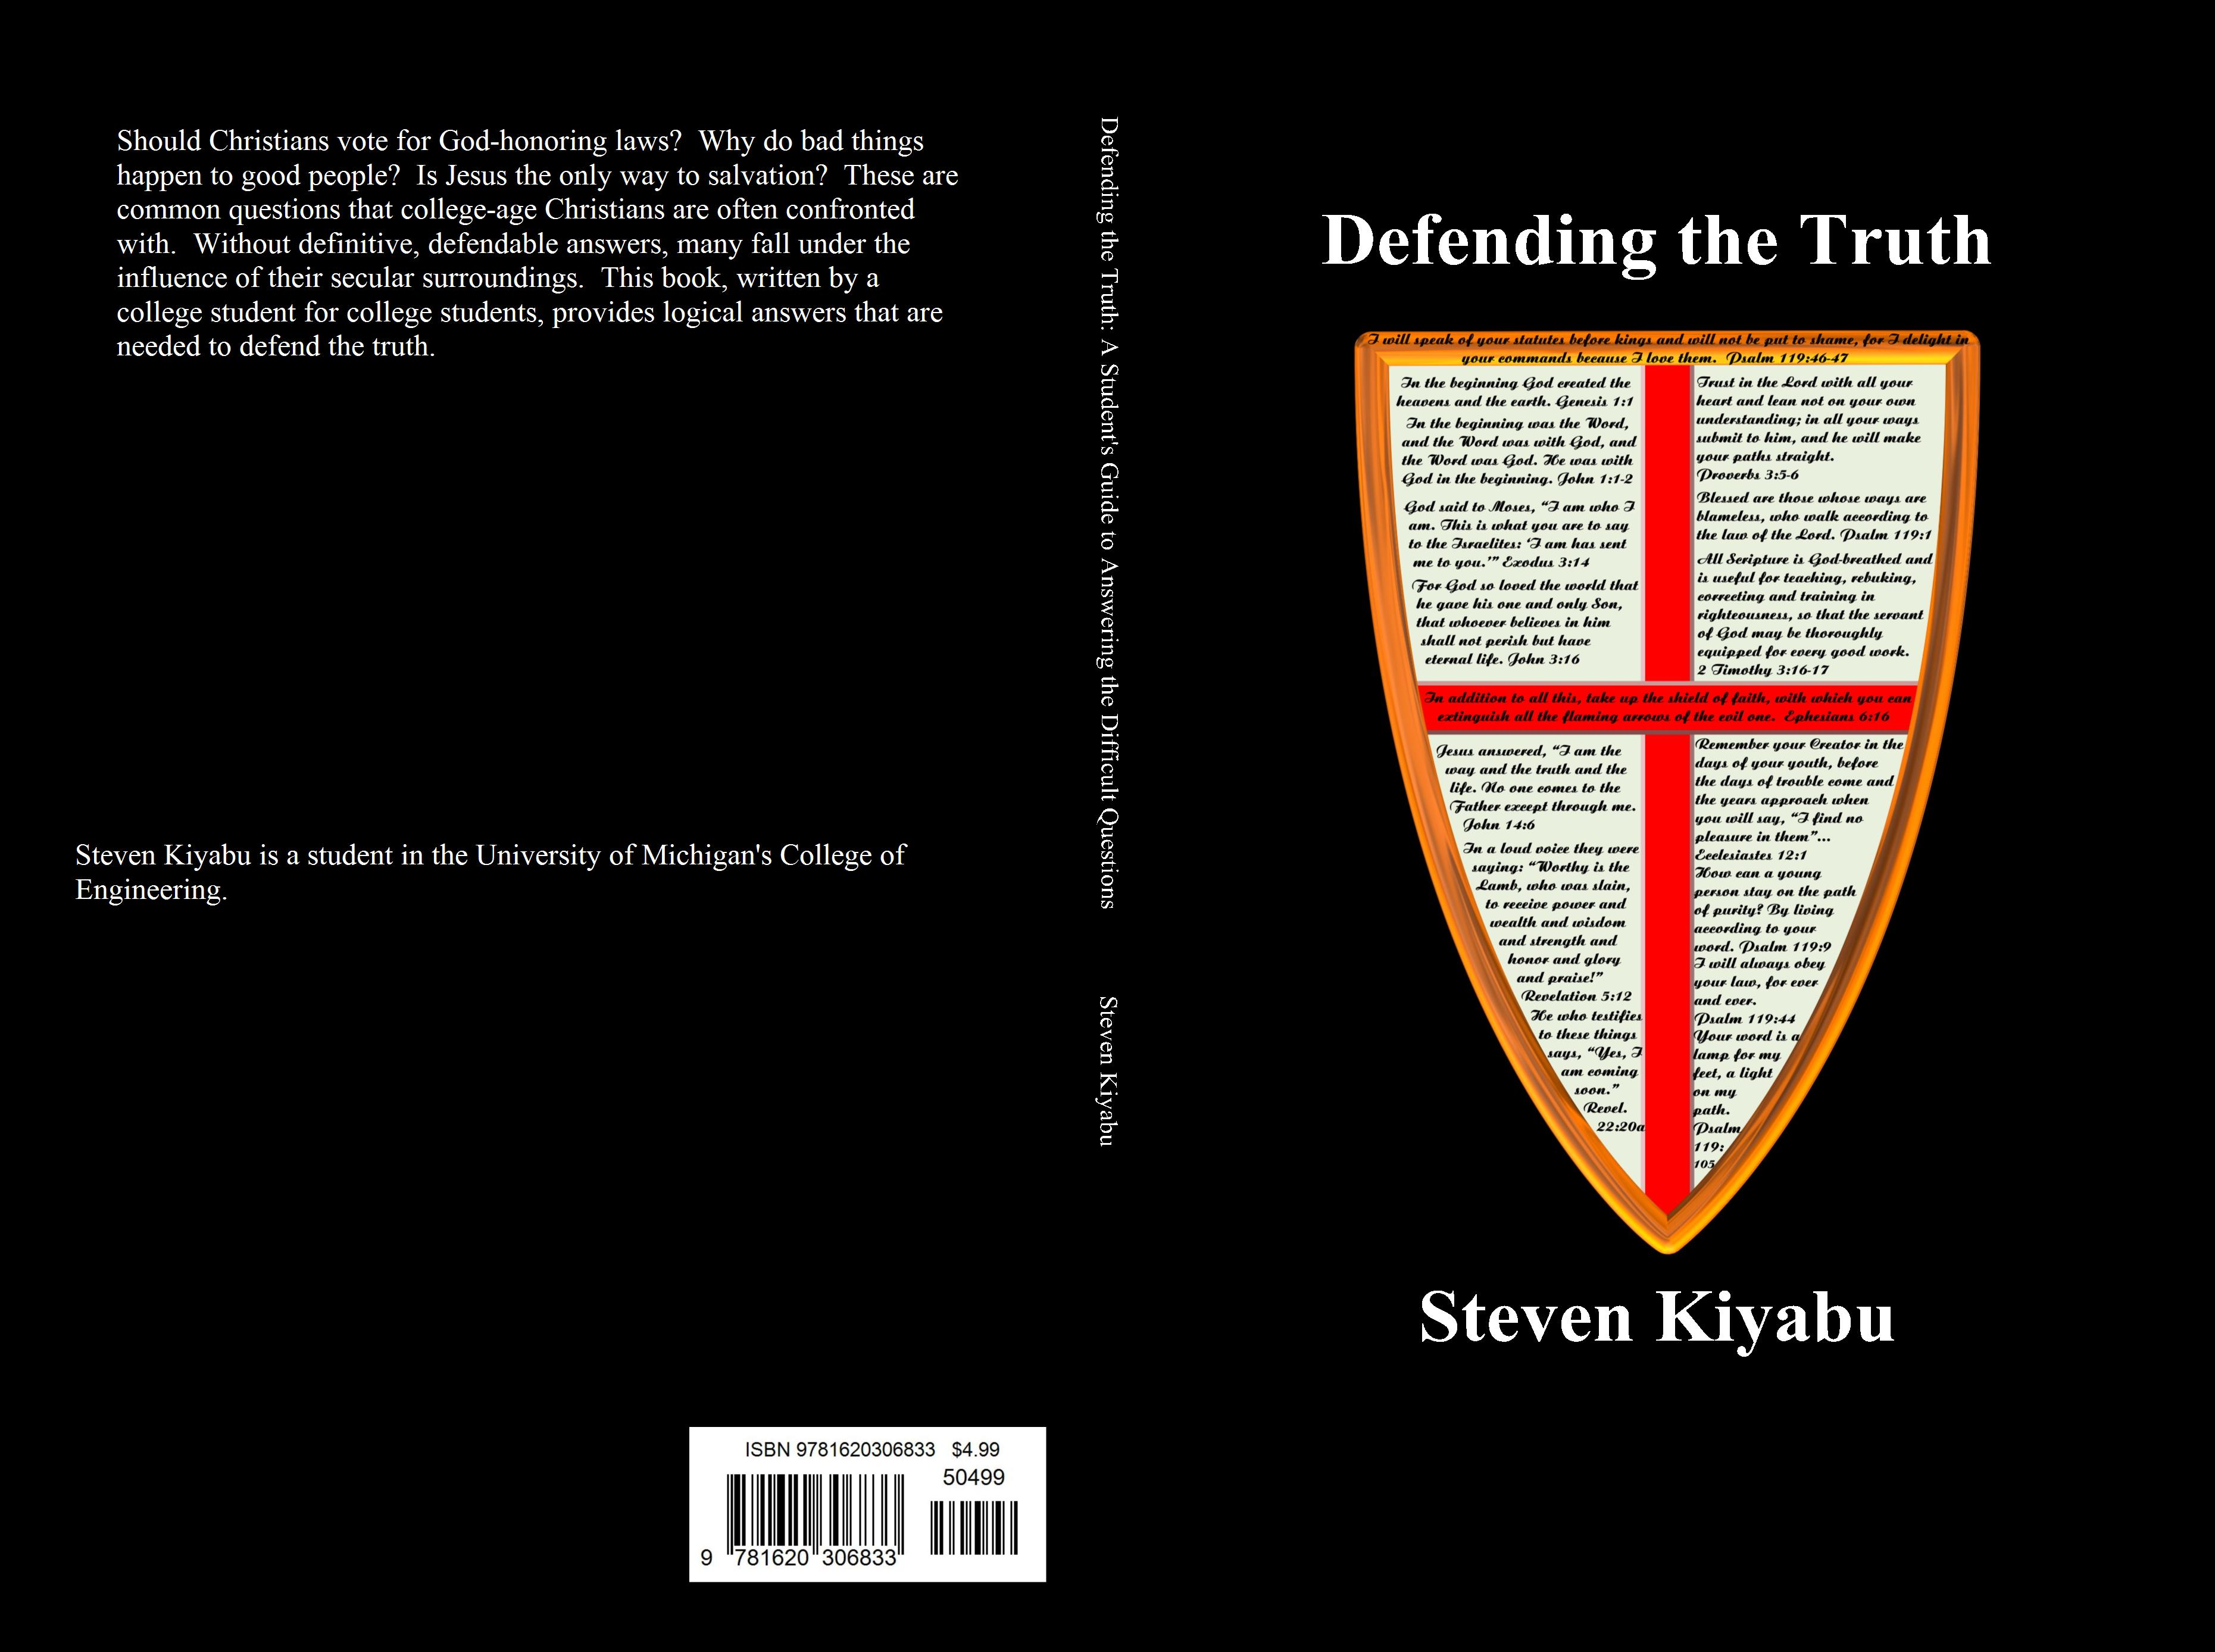 Defending the Truth cover image